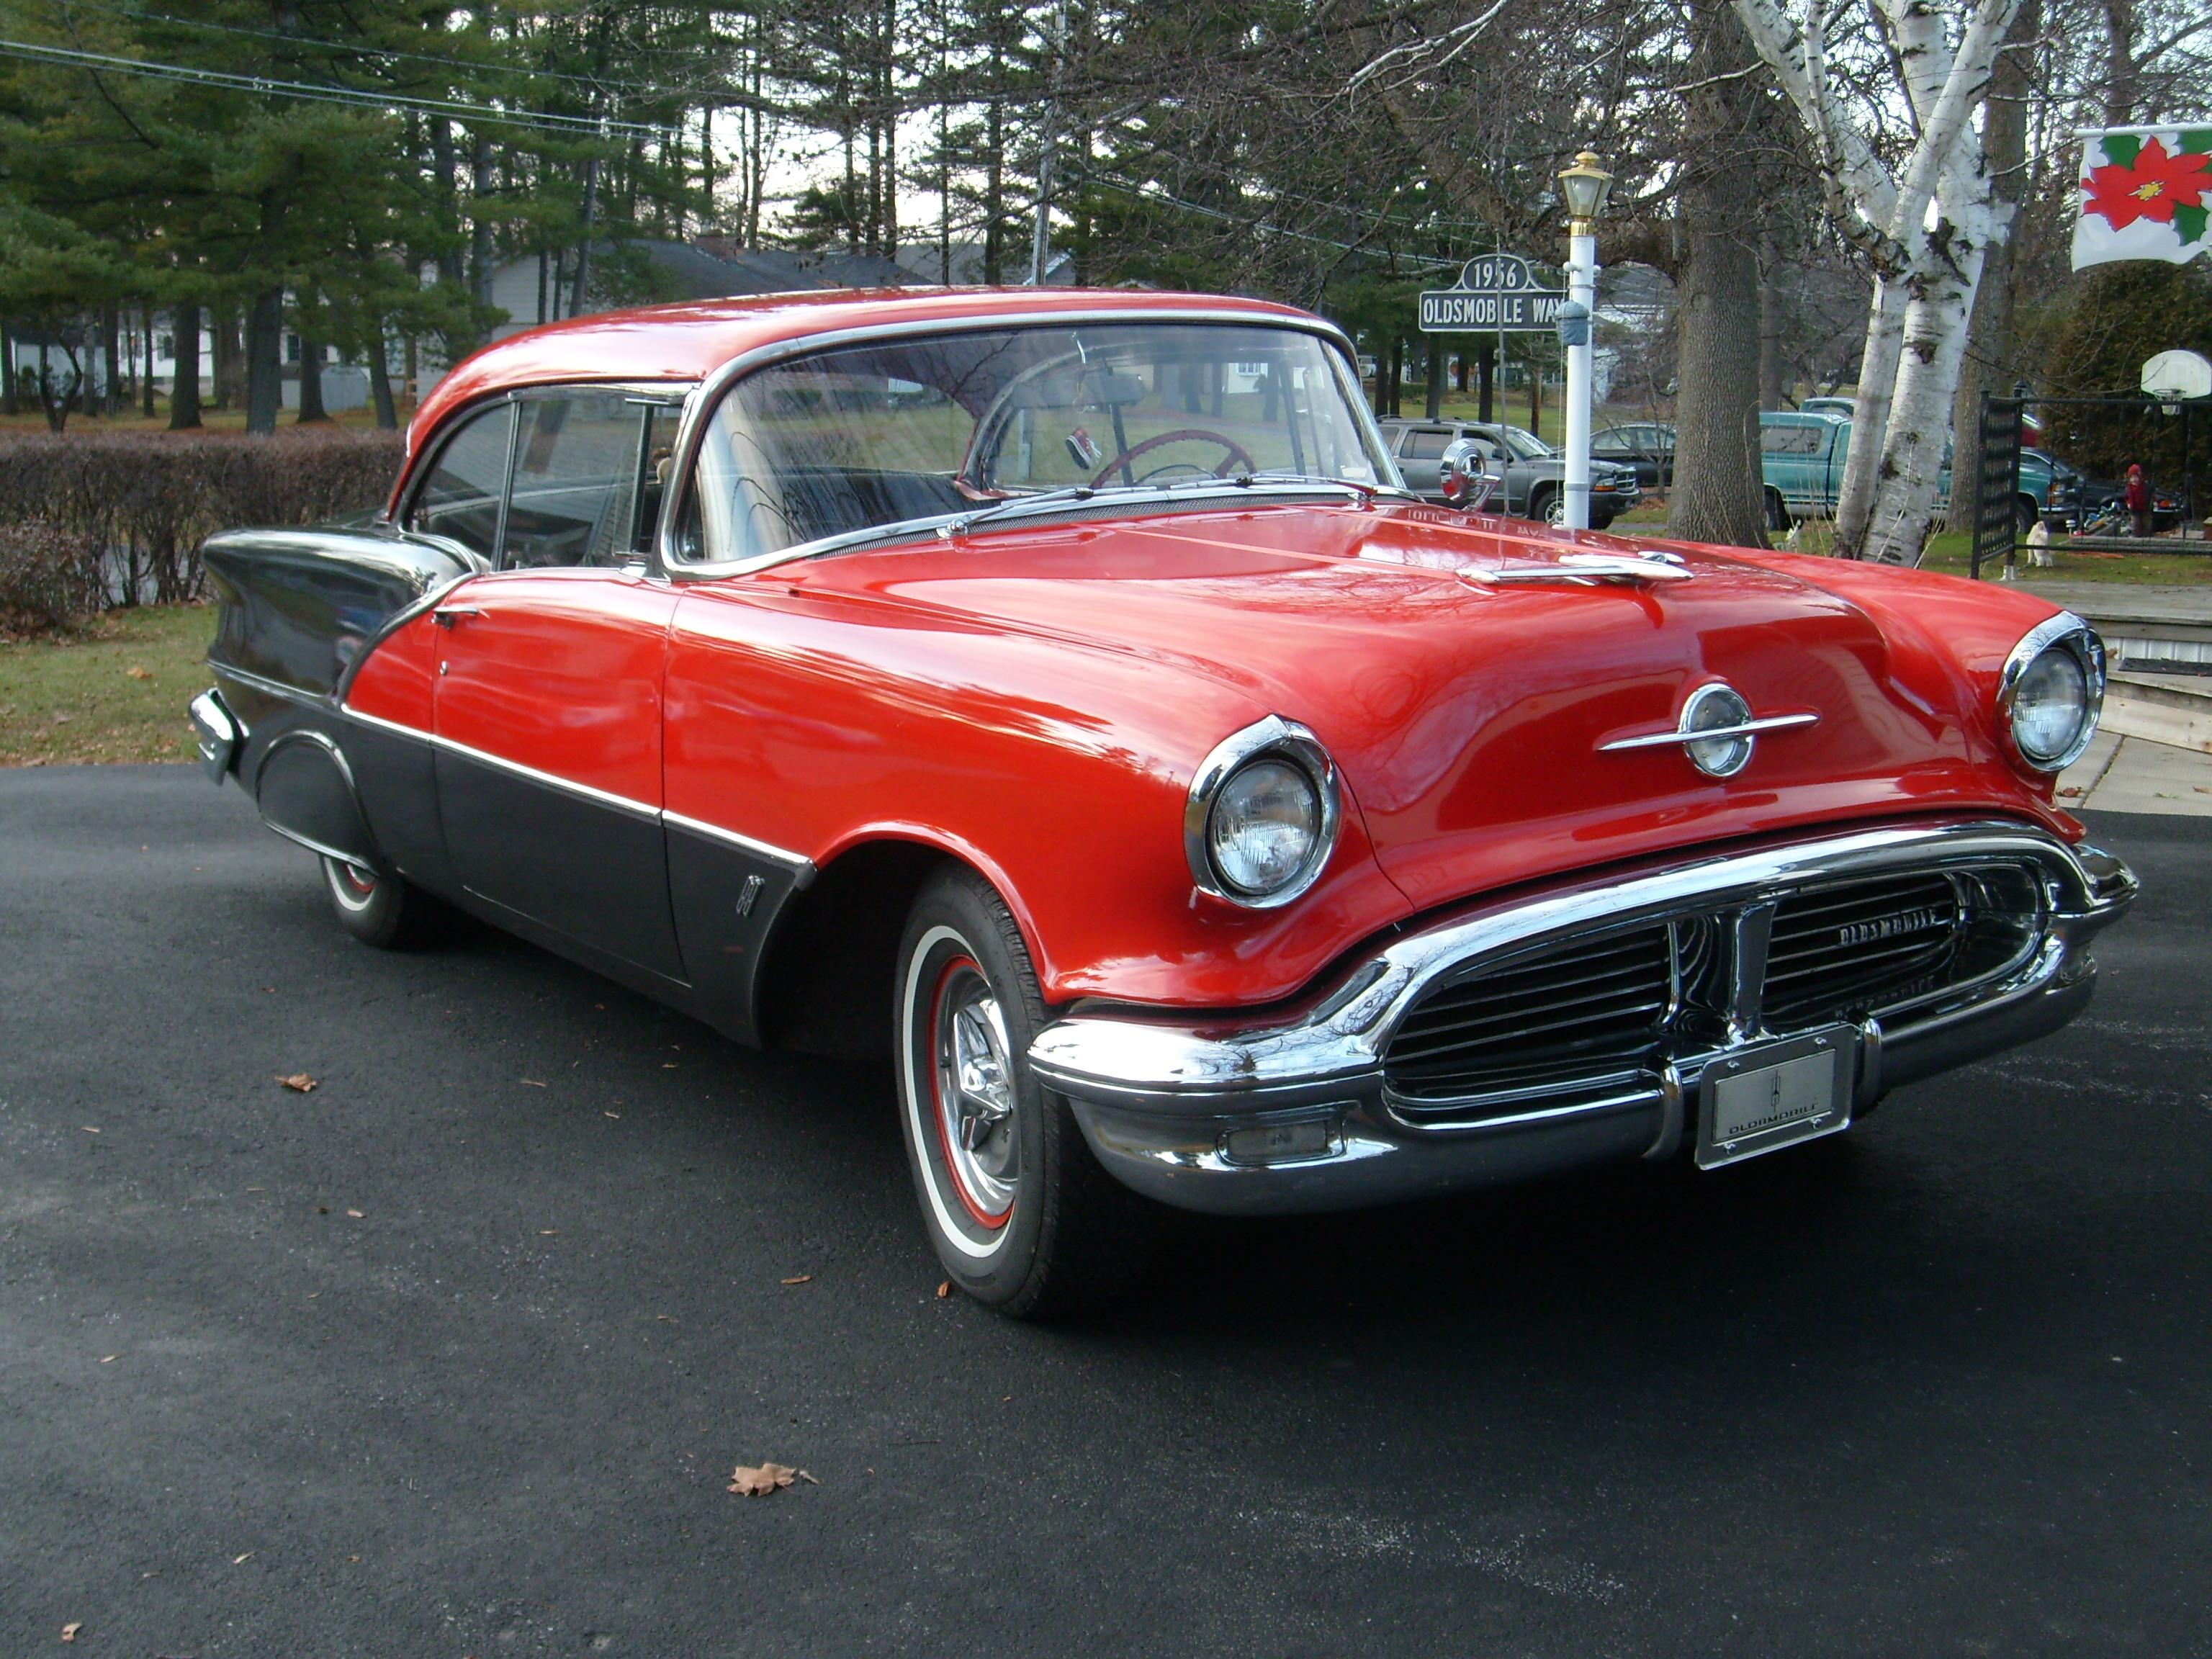 56Holiday88's 1956 Oldsmobile 88